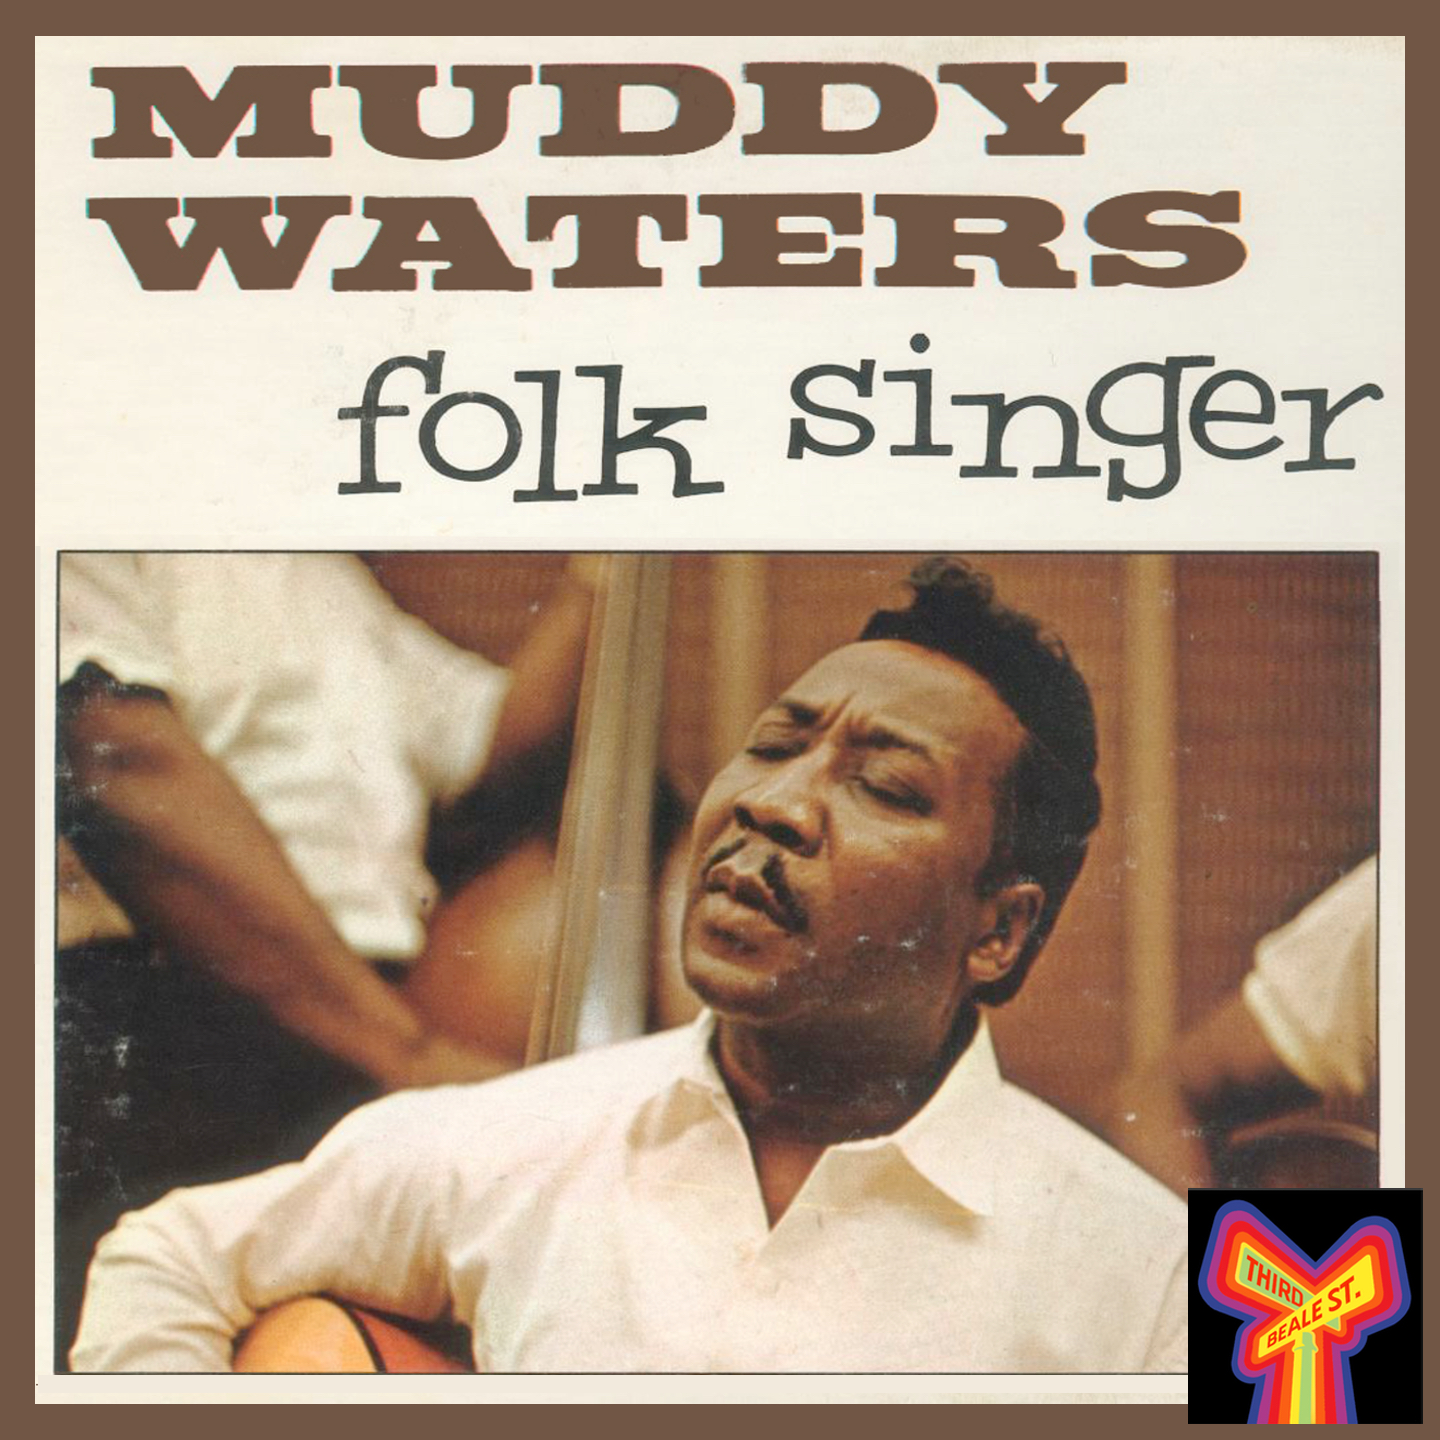 """Caption: Pictured: Now considered a classic, """"Muddy Waters Folk Singer,"""" issued 1964, attempted to capitalize on the exploding folk music market of the 1960s."""